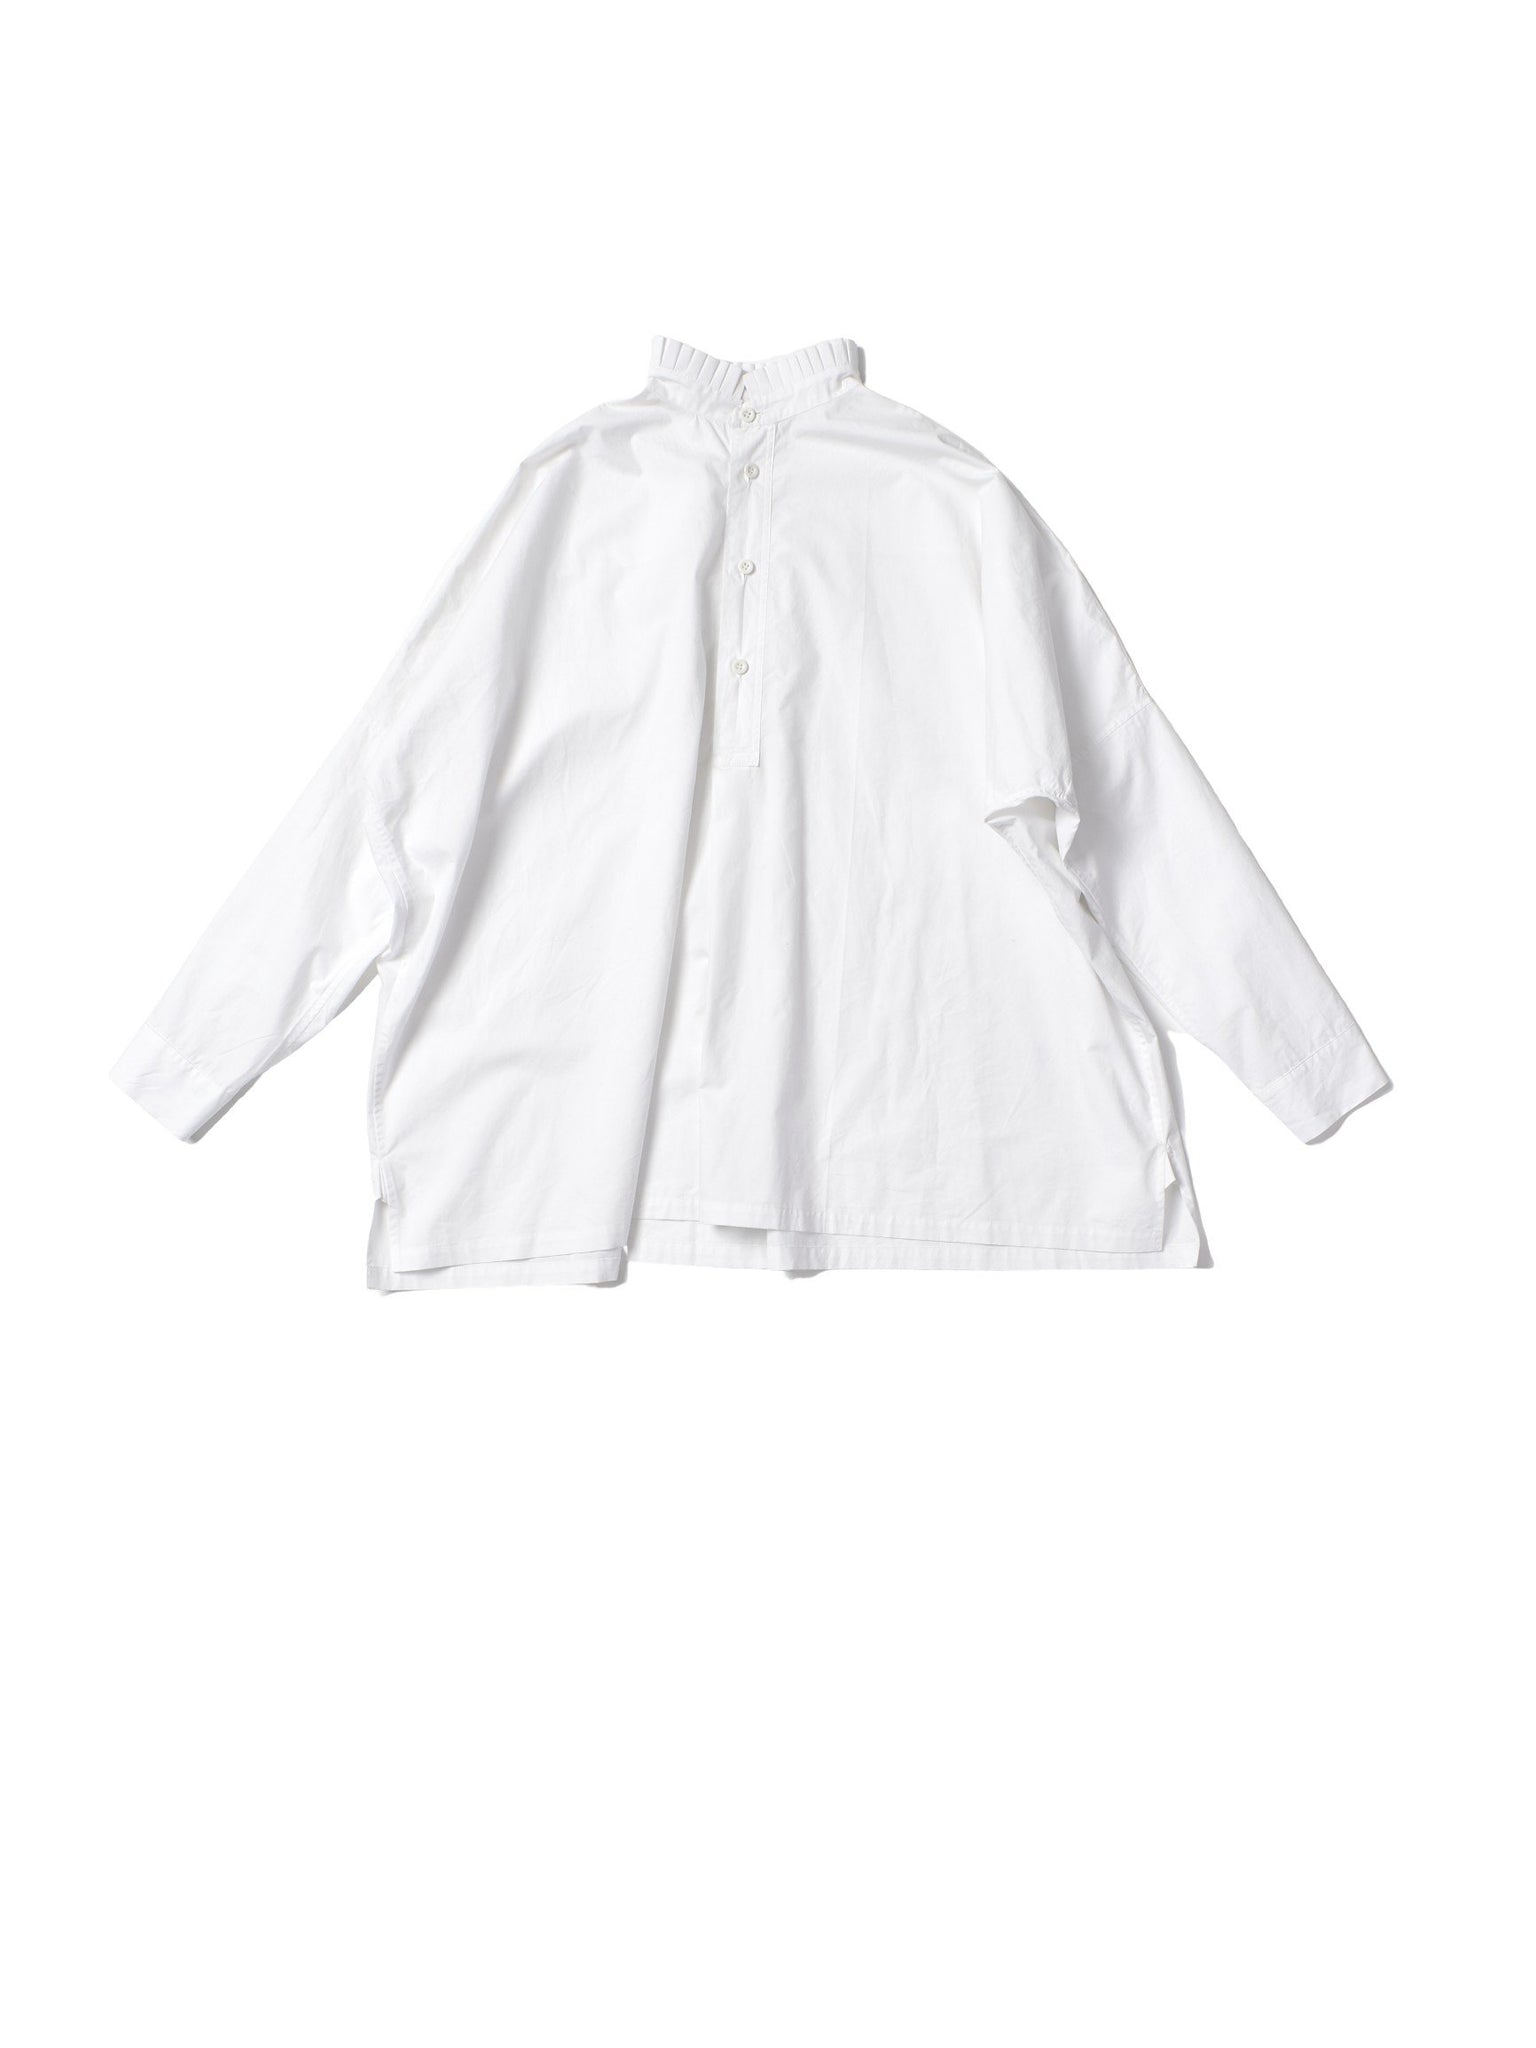 white square shirt